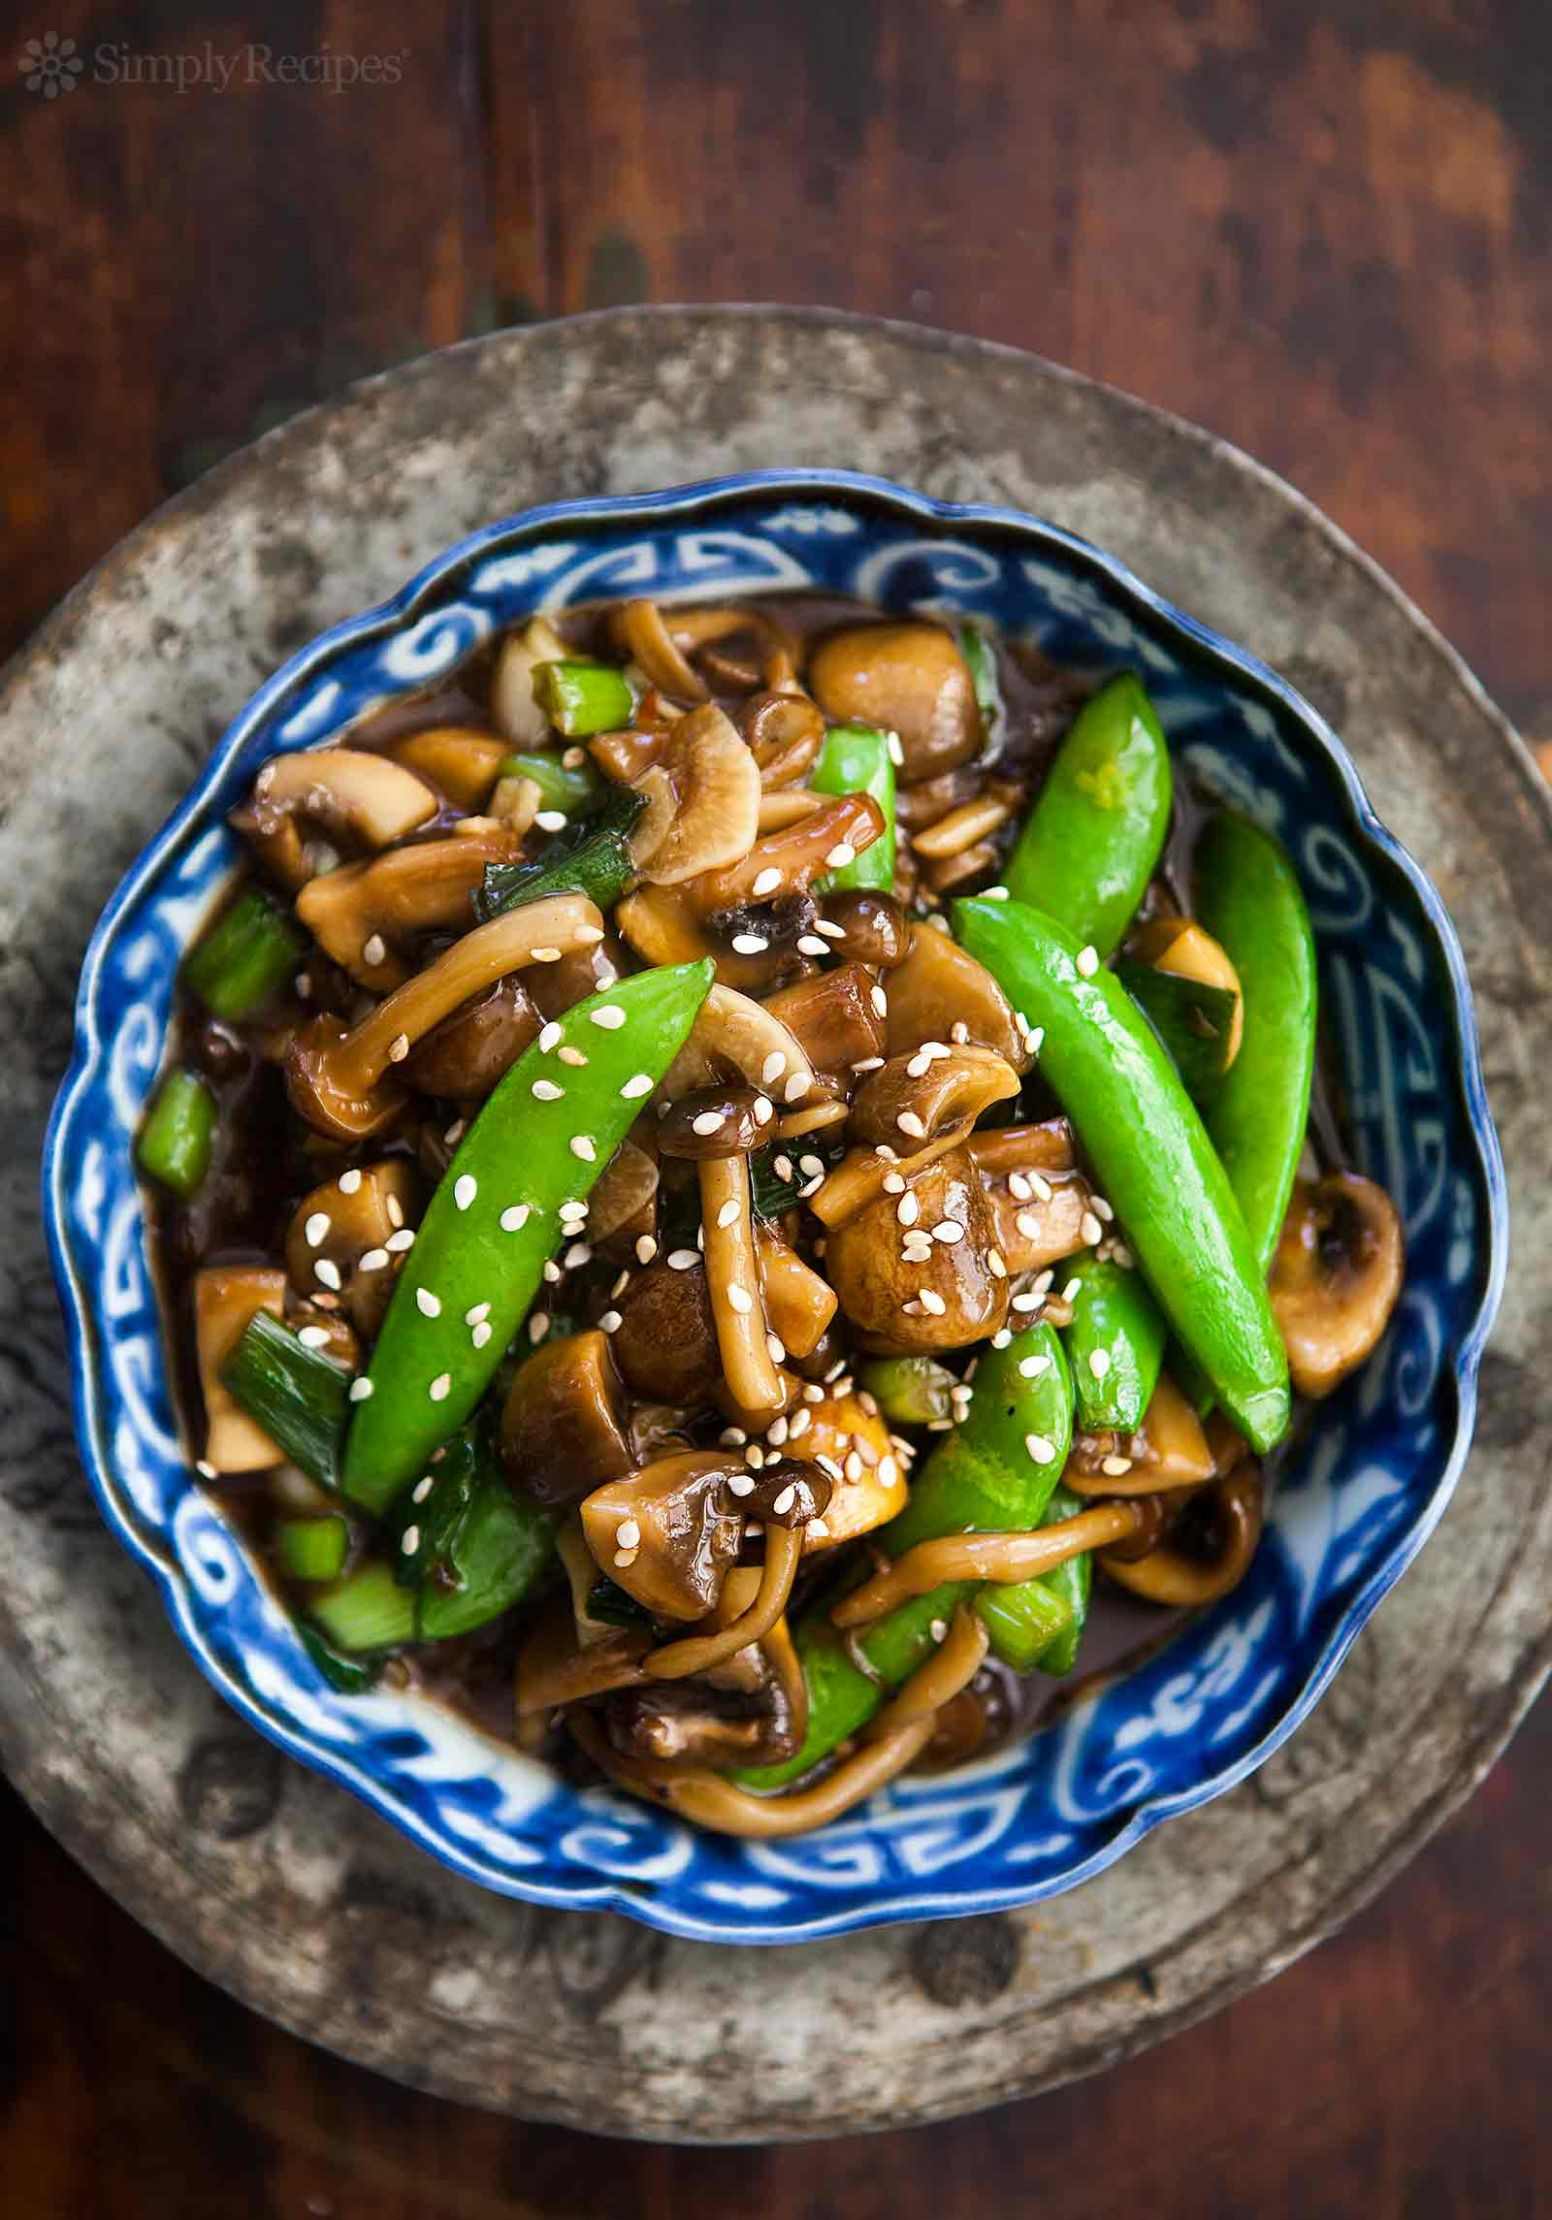 Mushroom Stir Fry with Peas and Green Onions - Vegetable Recipes Chinese